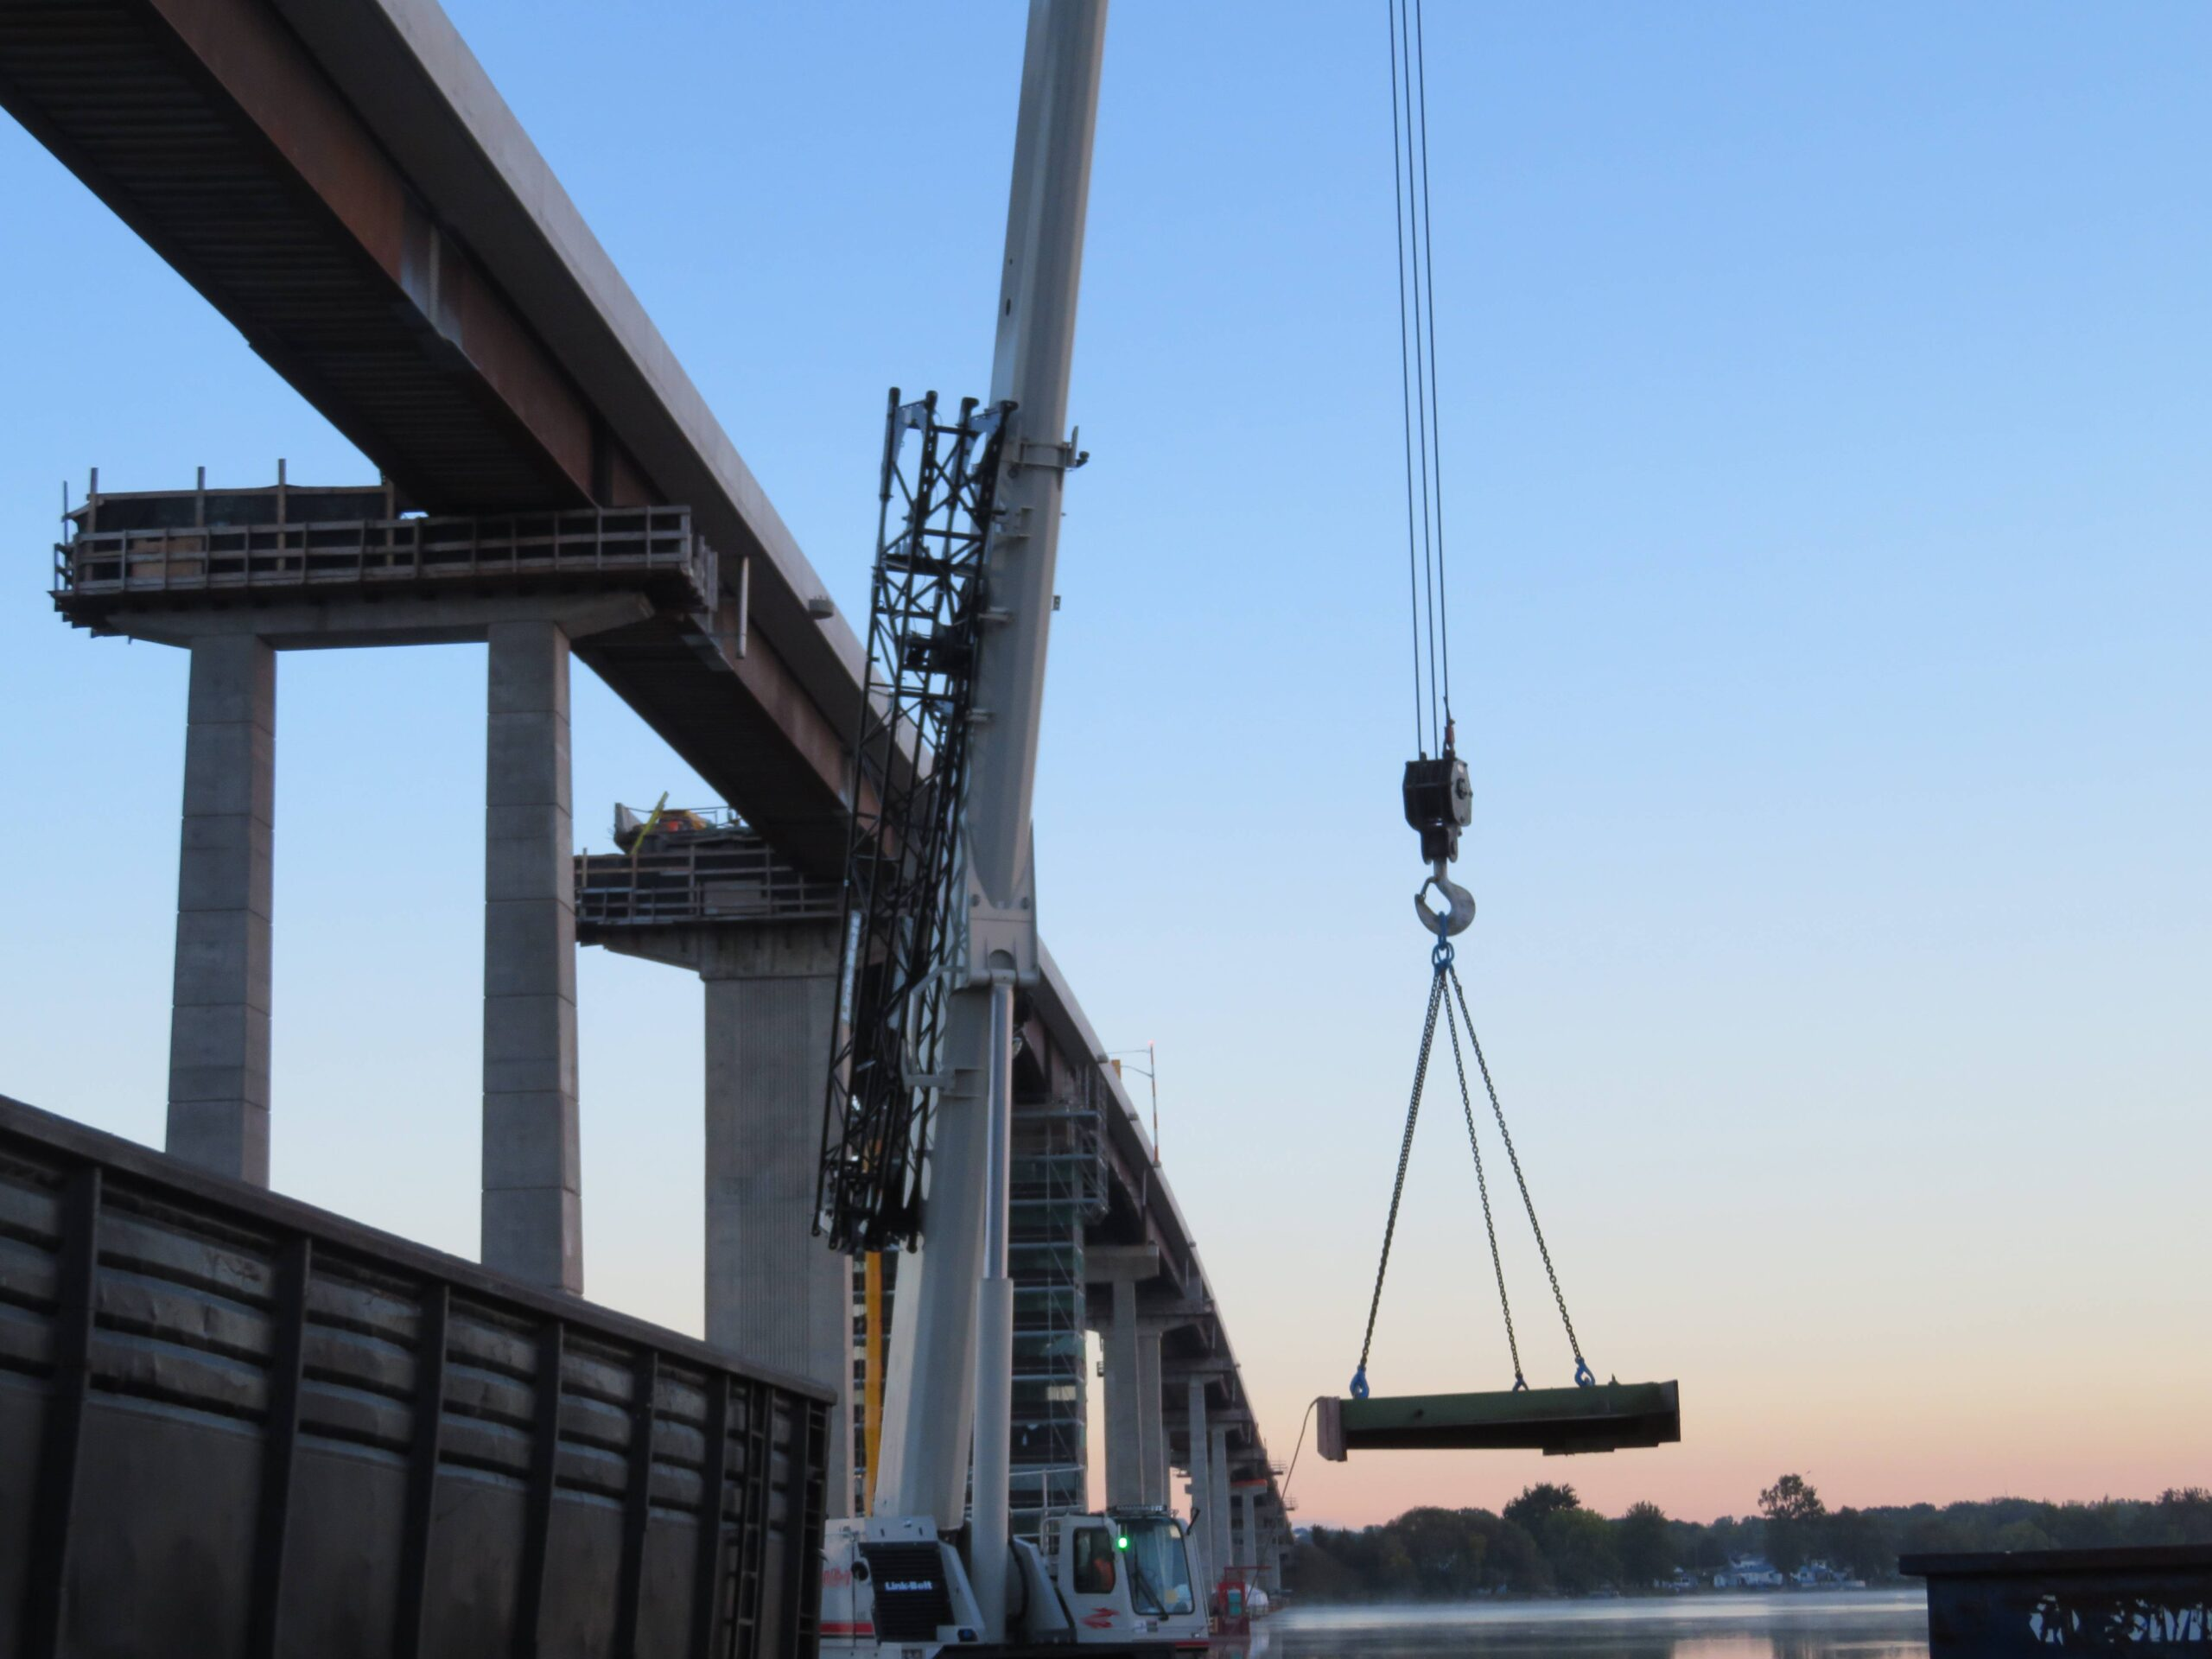 Using the 160-ton crane to load the truck with removed girder pieces